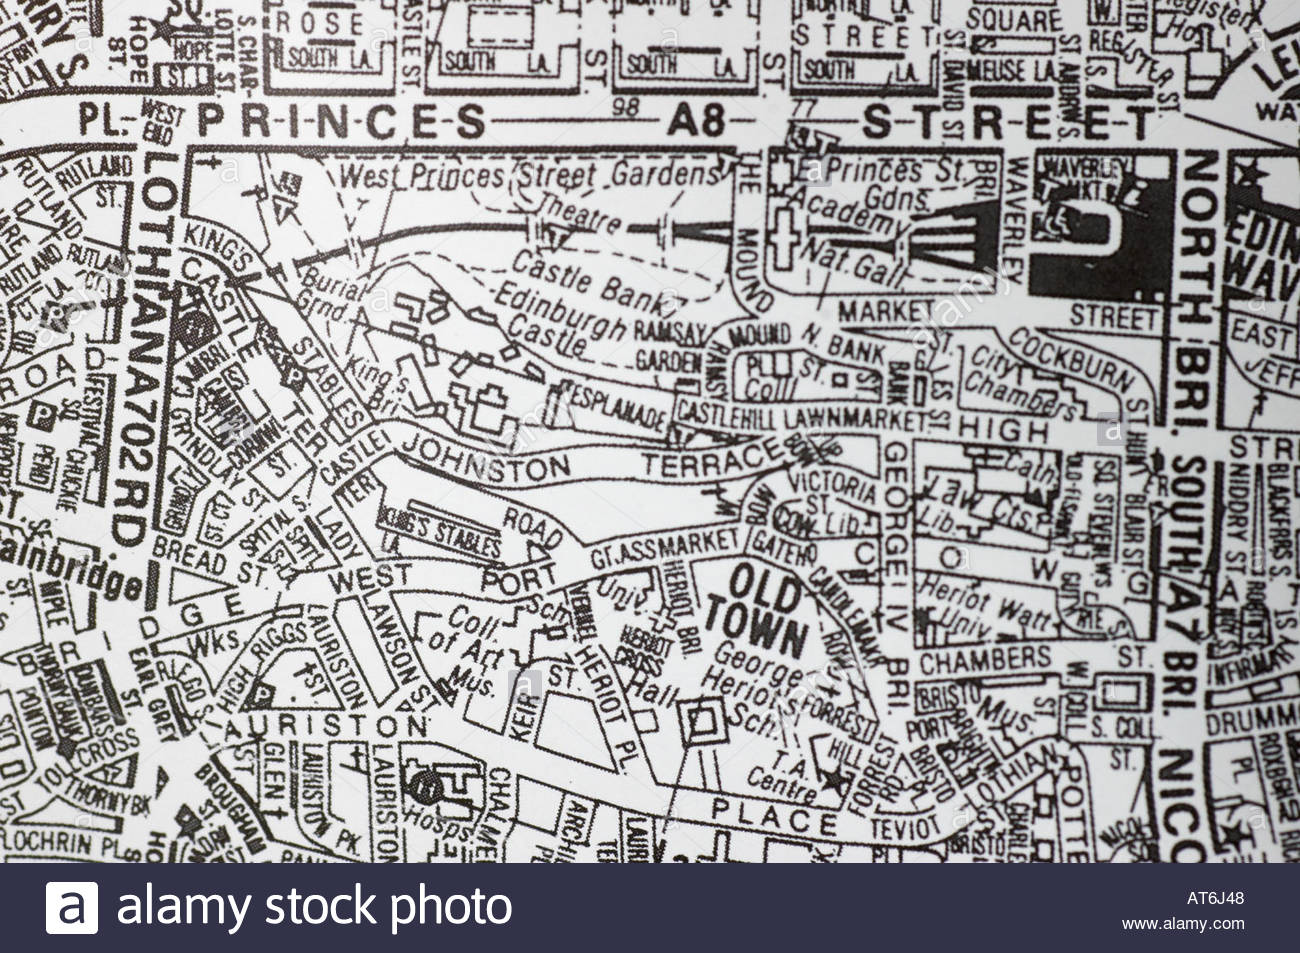 Worksheet. City centre map of Edinburgh Scotland in black and white Stock